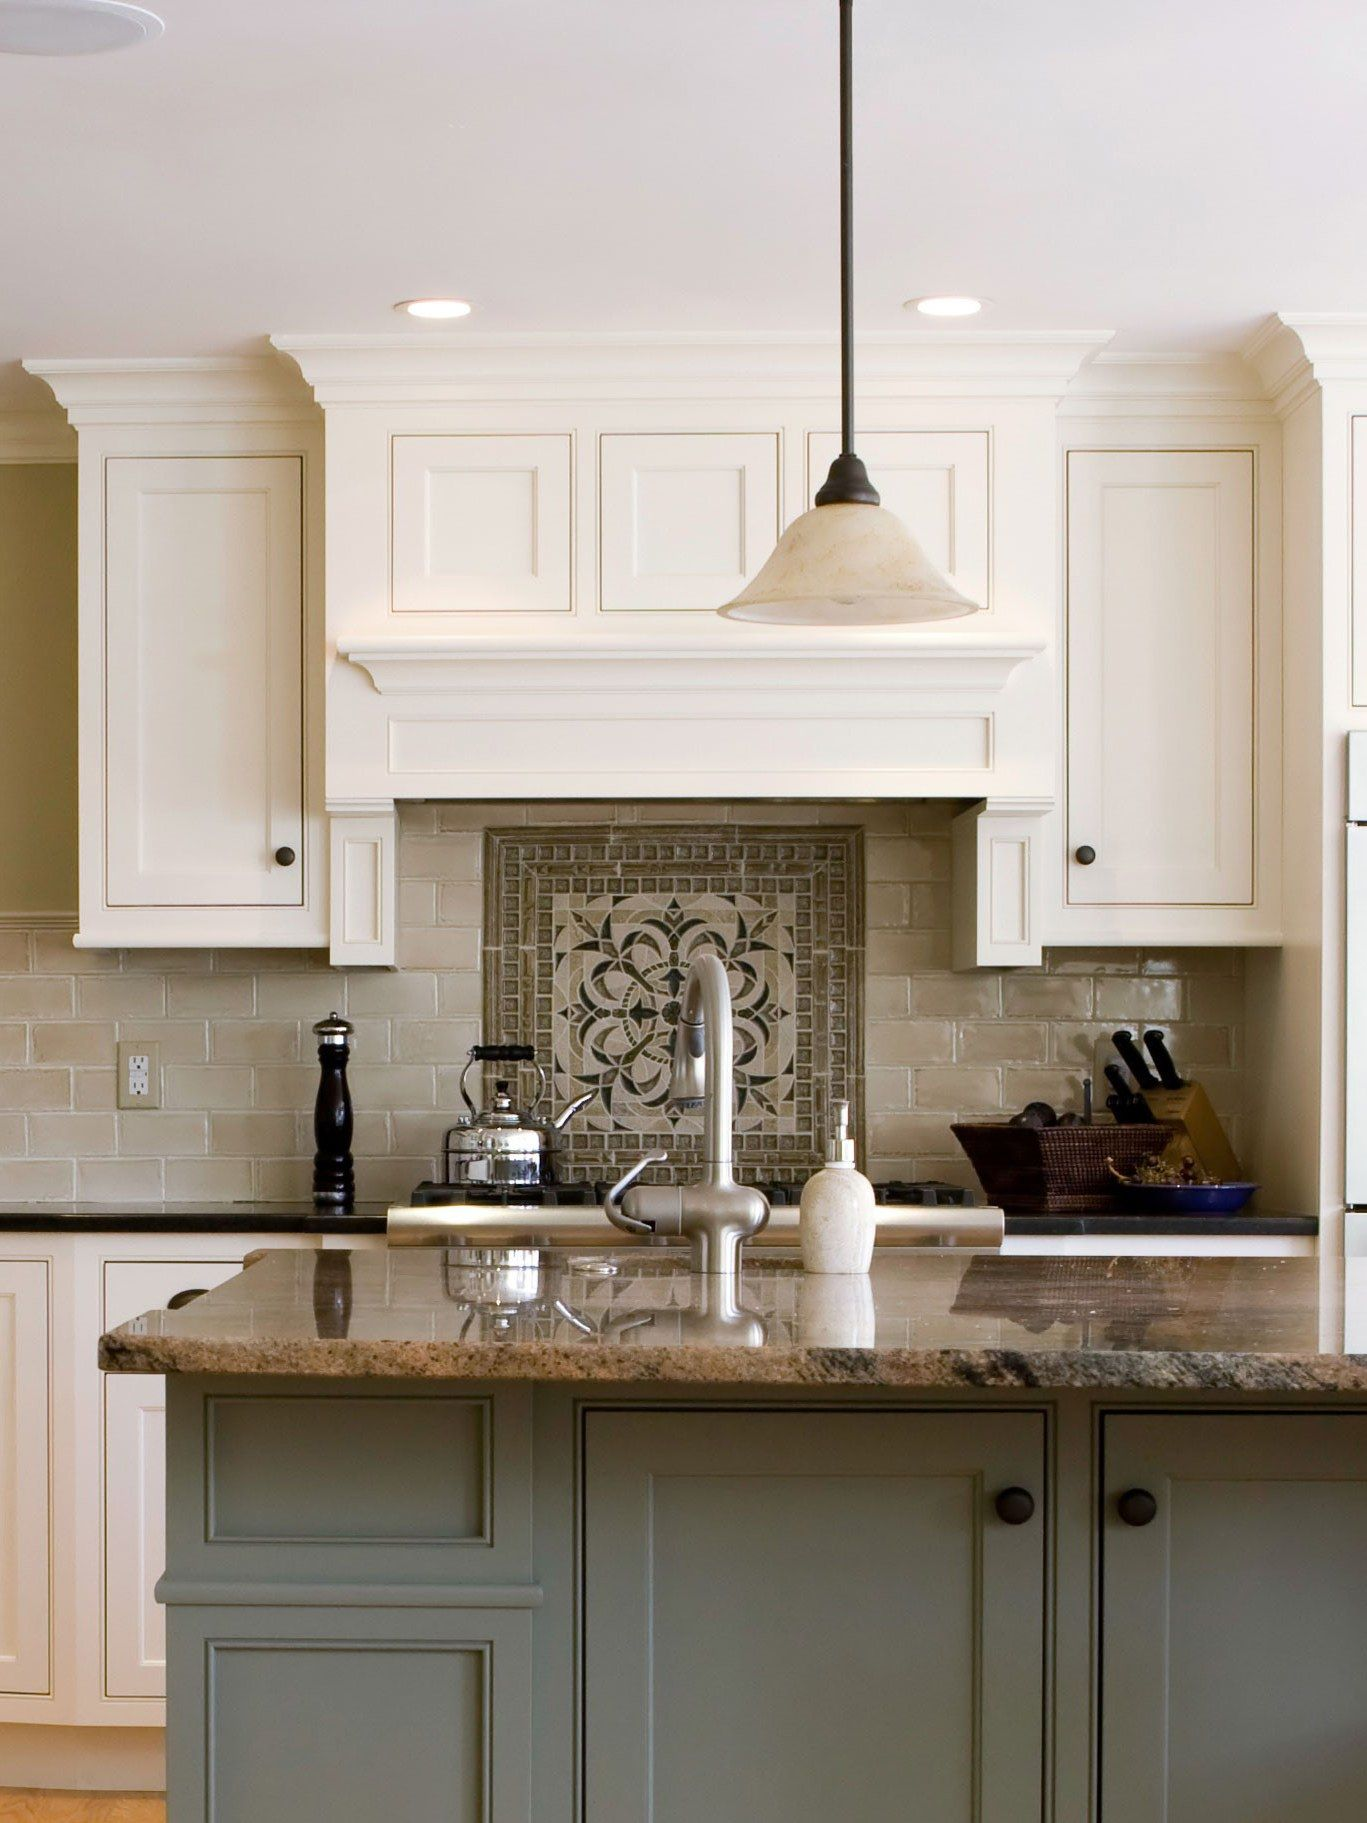 Best Diy Kitchen Cabinet Ideas And Designs For 2019 And Diy Kitchen Cabinets From Pallets Ceilin Diy Kitchen Cabinets Kitchen Cabinetry Kitchen Cabinet Layout